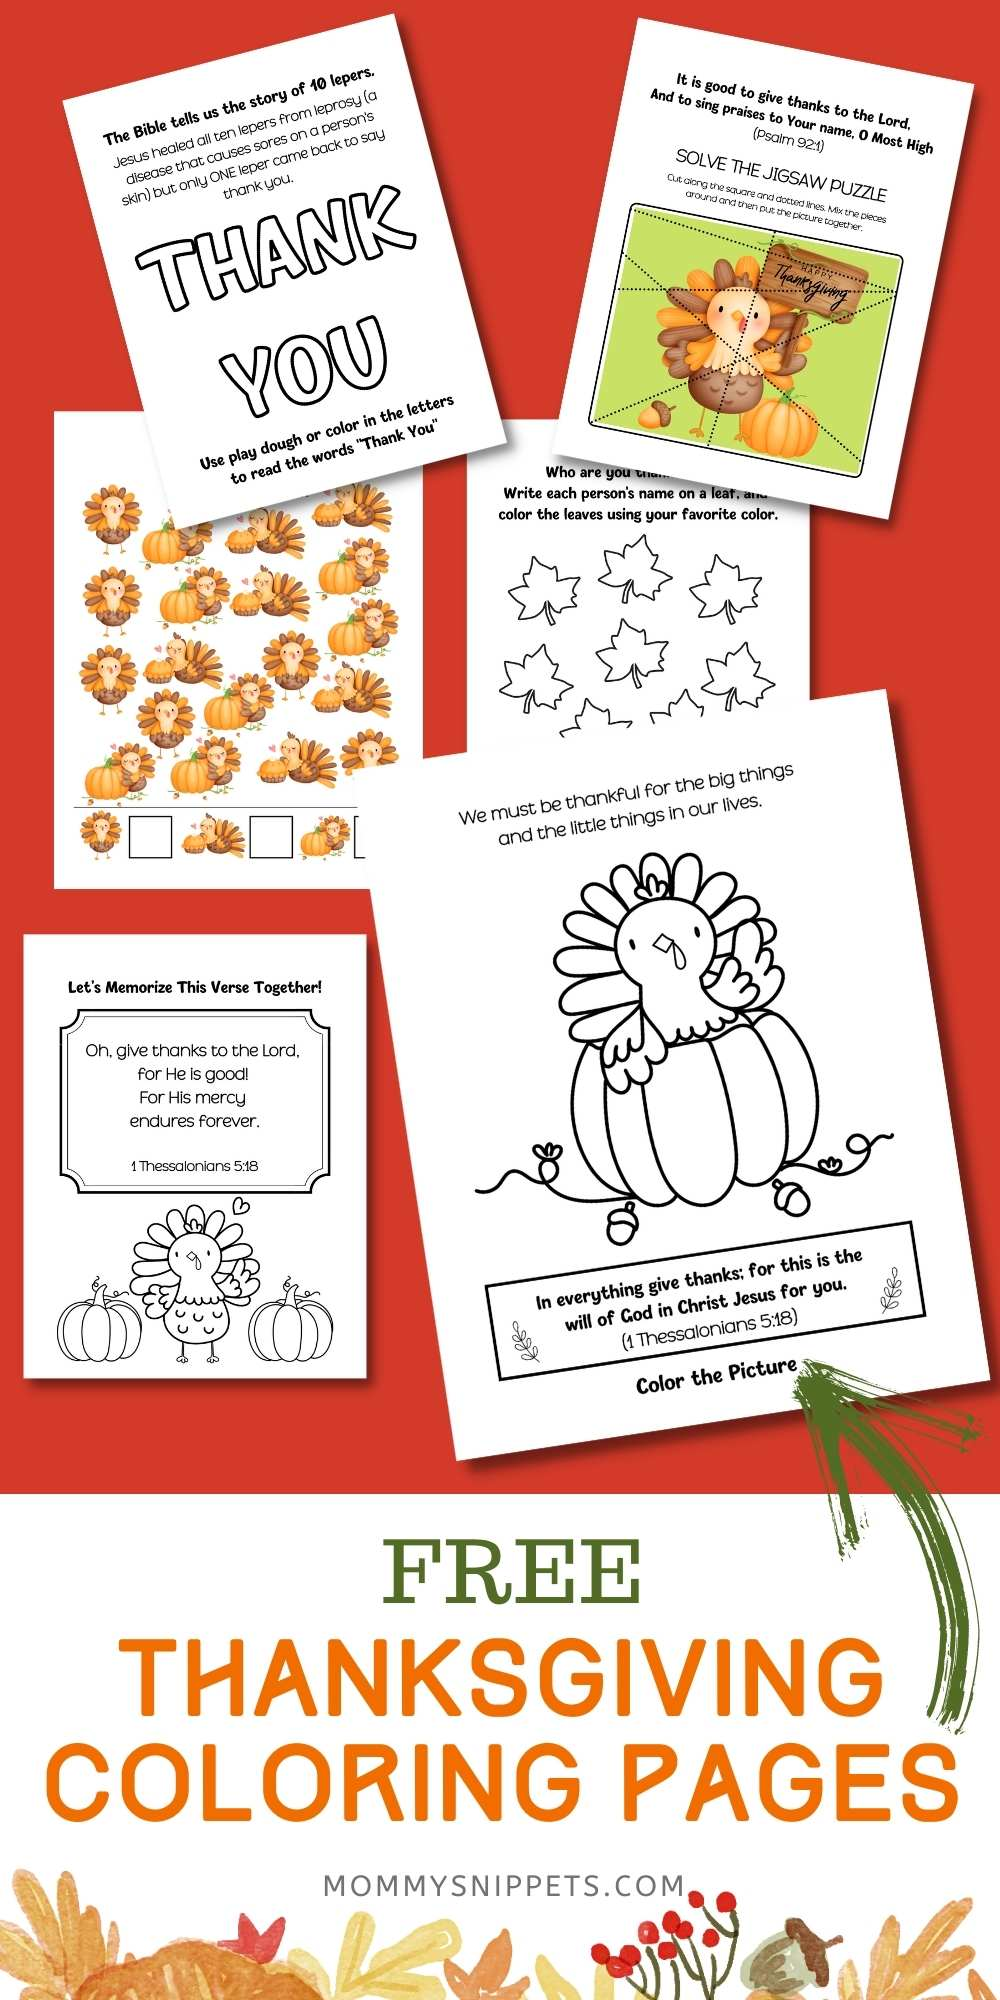 Free Thanksgiving Coloring Pages with Bible Verses for Kids and Activity Sheets- MommySnippets.com